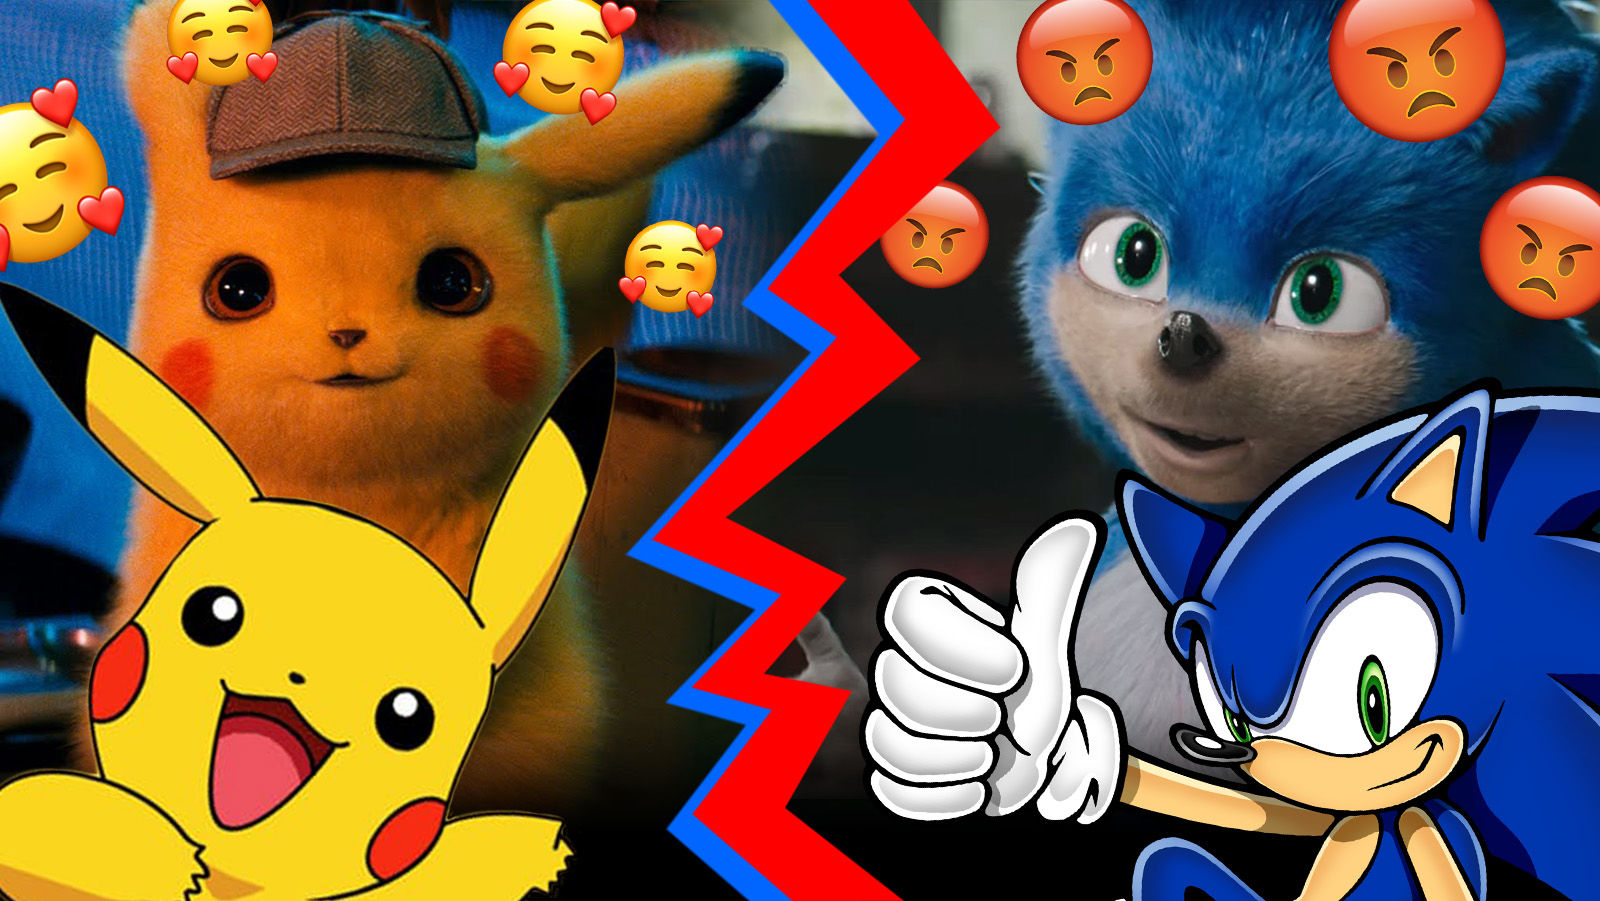 Why Detective Pikachu S Cgi Pokemon Look Real And Sonic The Hedgehog Doesn T